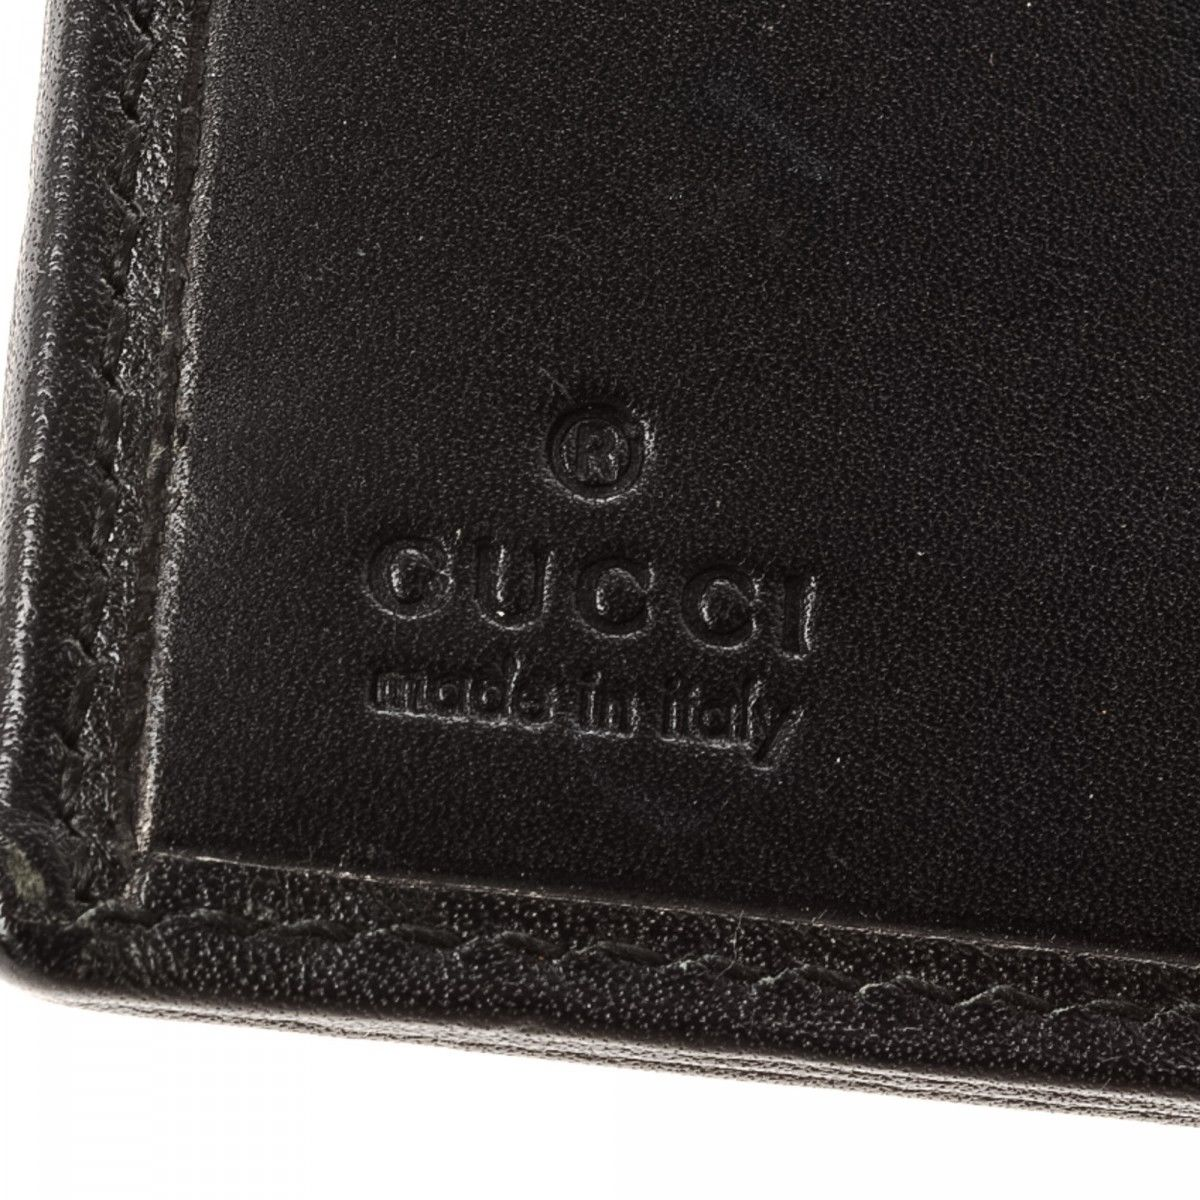 b2bce9727f49d8 Gucci Jackie Compact Wallet. LXRandCo guarantees this is an authentic  vintage Gucci Jackie Compact wallet. Crafted in leather ...